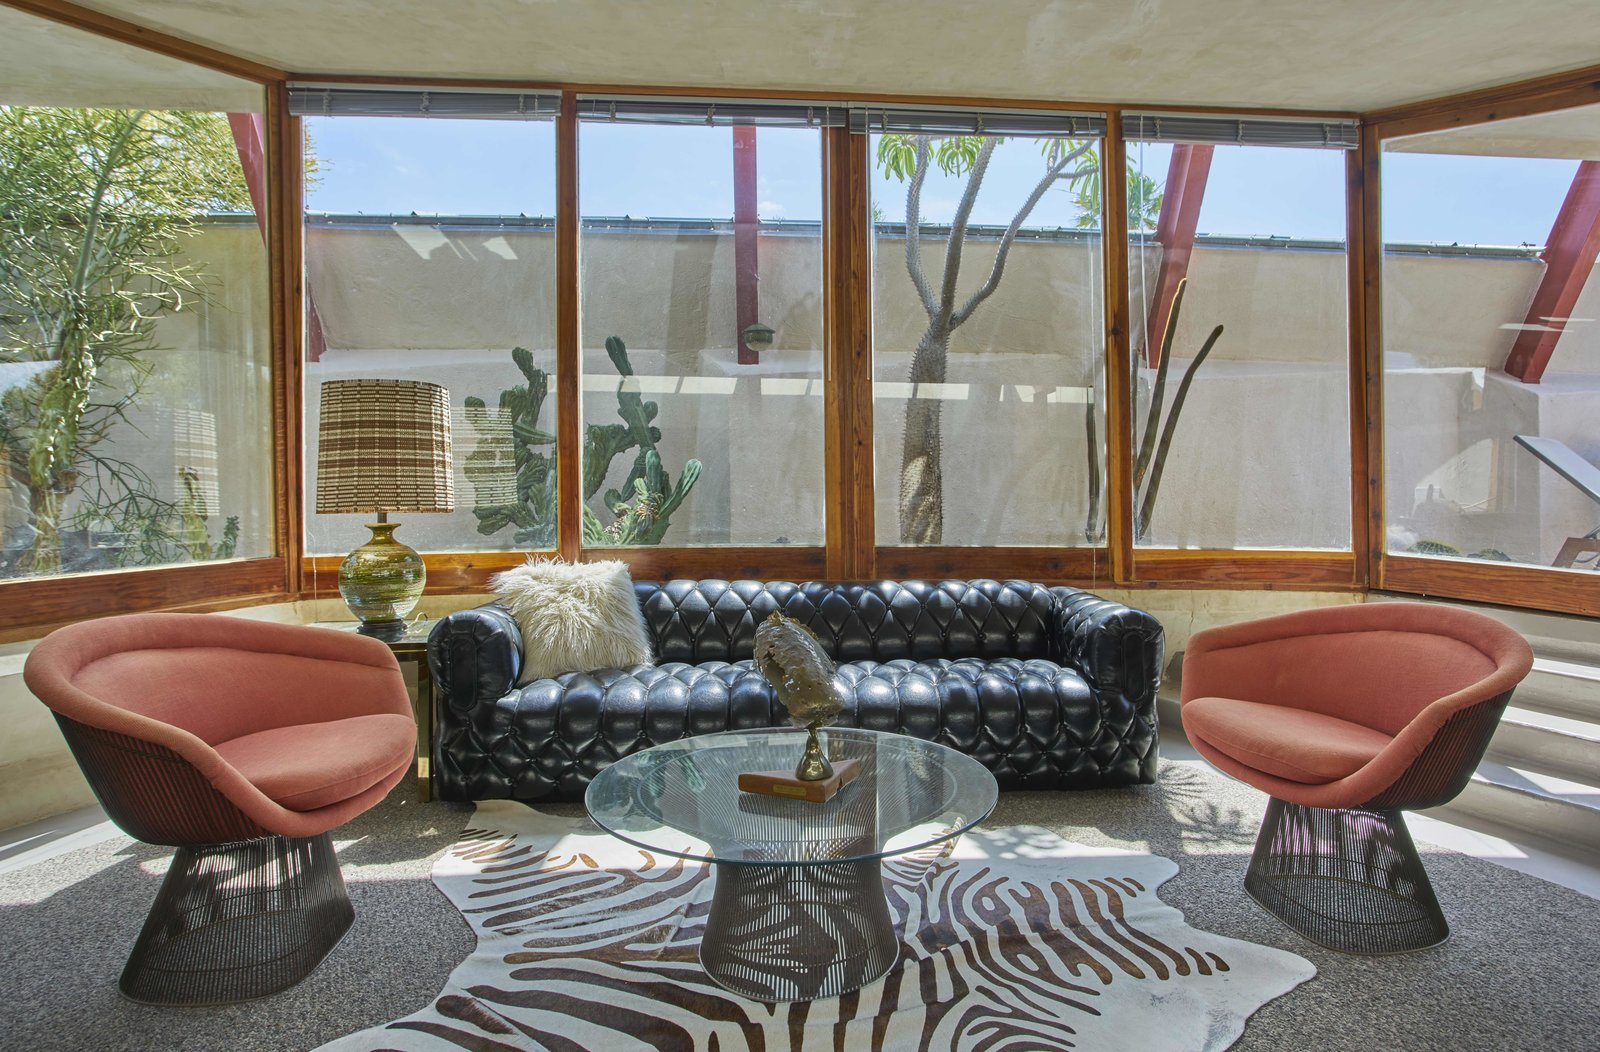 Living Room, Sofa, Lamps, Chair, Coffee Tables, End Tables, Rug Floor, Carpet Floor, Concrete Floor, and Table Lighting  Photo 12 of 13 in Escape to a John Lautner Micro-Resort in the Californian Desert